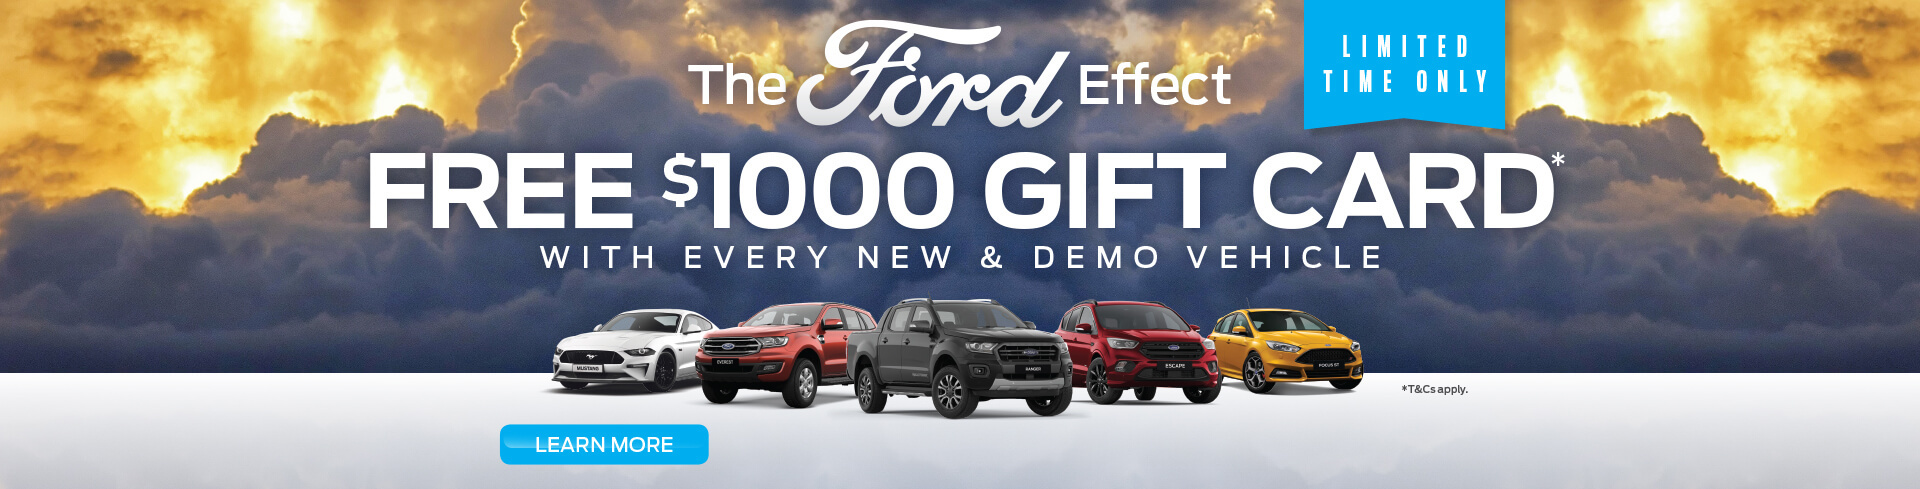 The Ford Effect | Free $1000 Gift Card*